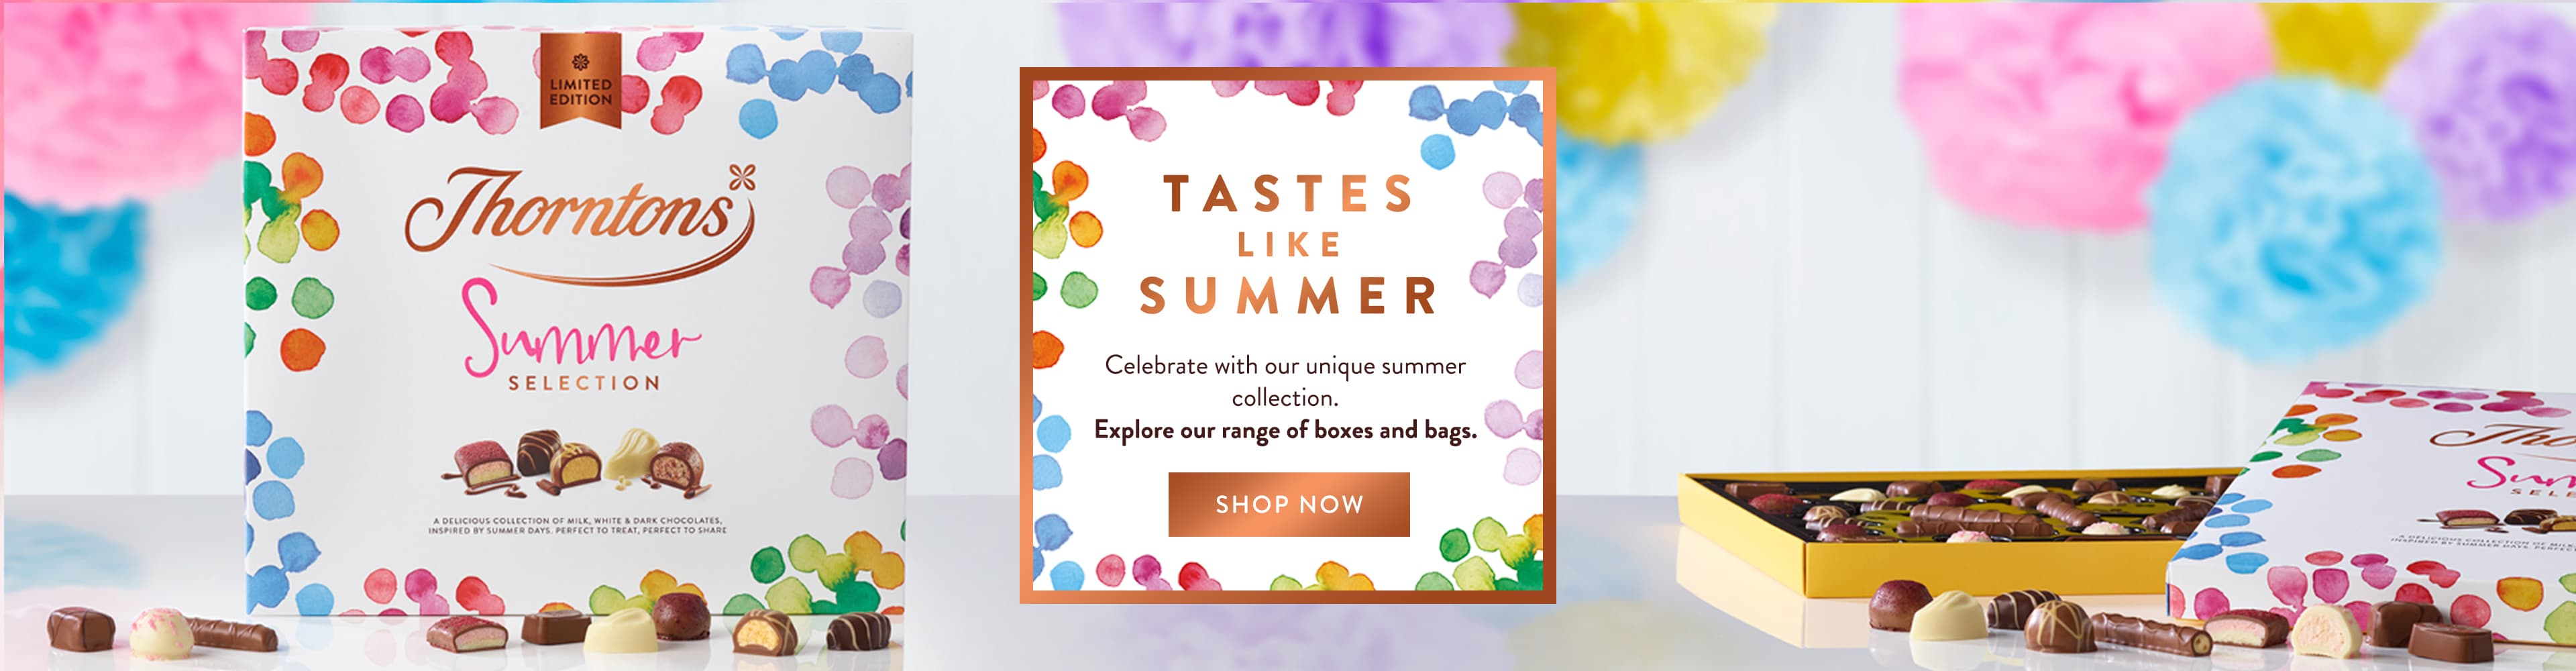 f36832c208595 ... Summer is a season of celebration! Thorntons unique and personalised  chocolates are just the thing ...